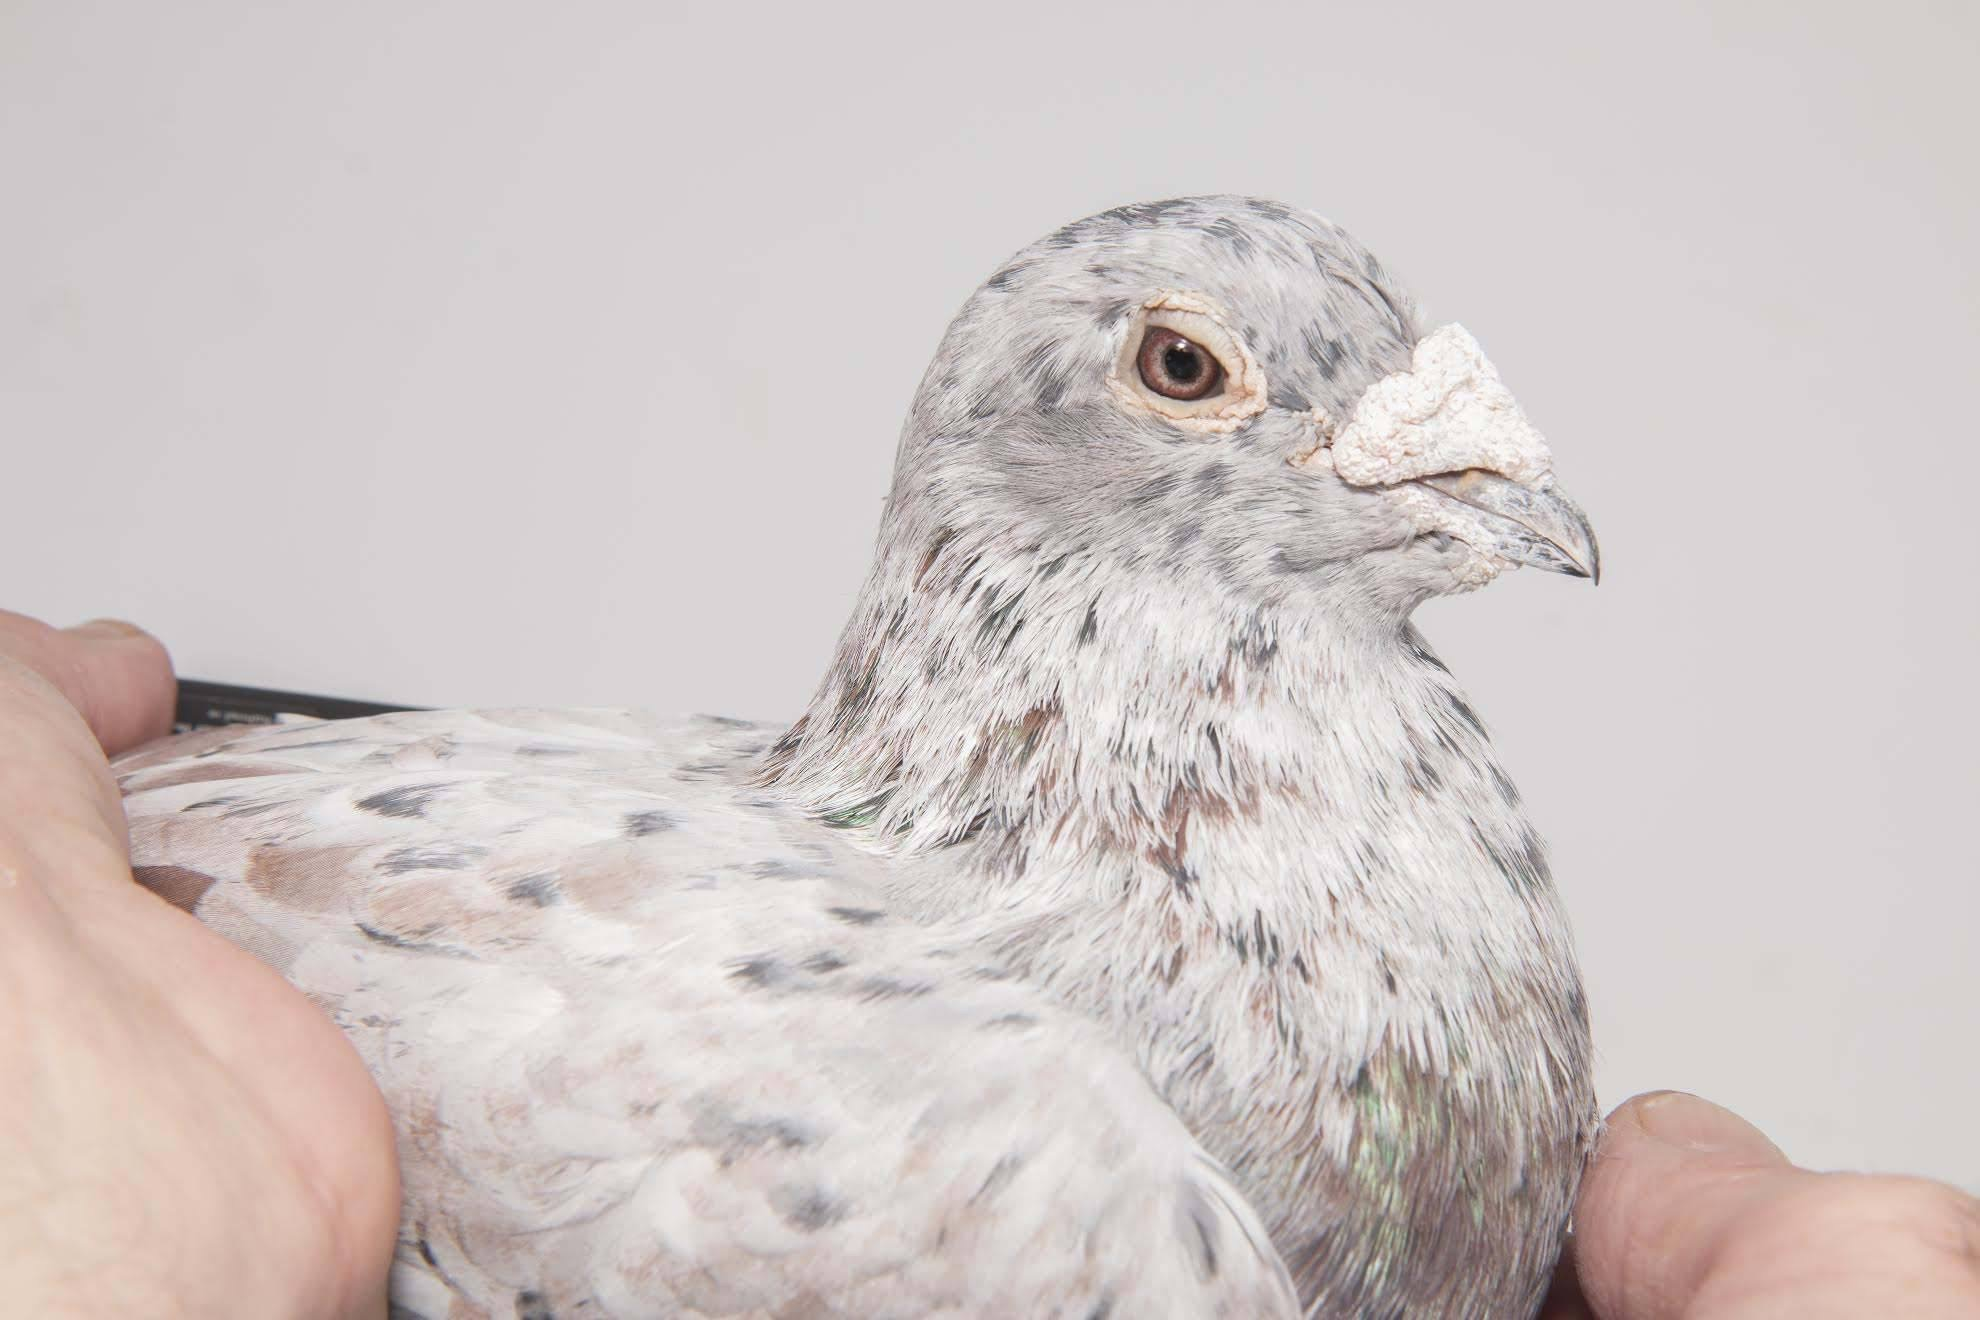 IT 18 408099 M - Mr Expensive 1 Ace pigeon North Sea OLR x daughter Bear David Clausing